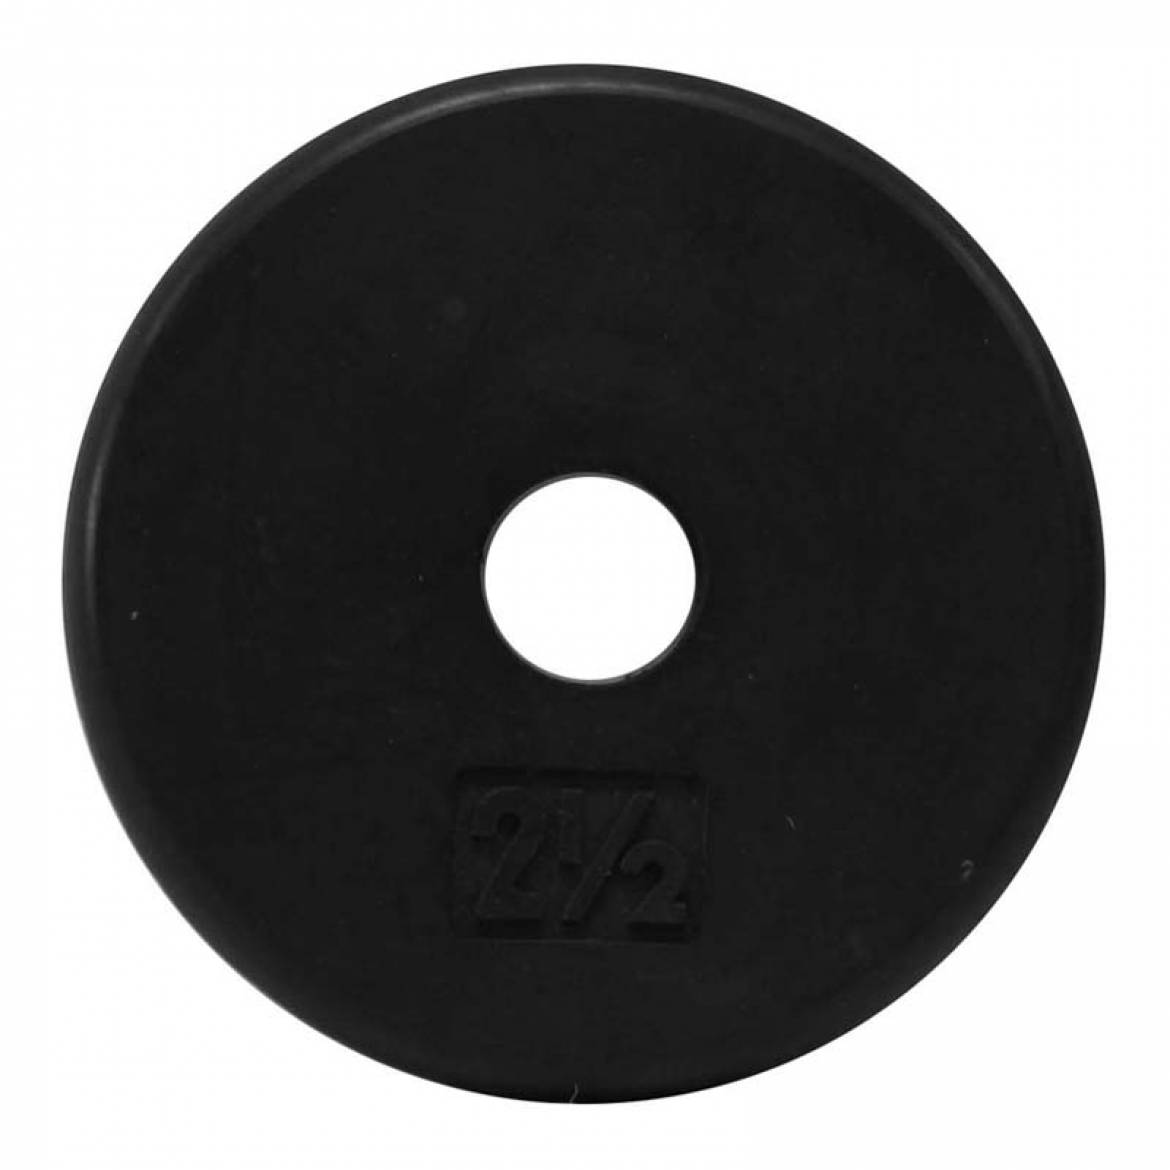 1″ Black Rubber Coated Plates